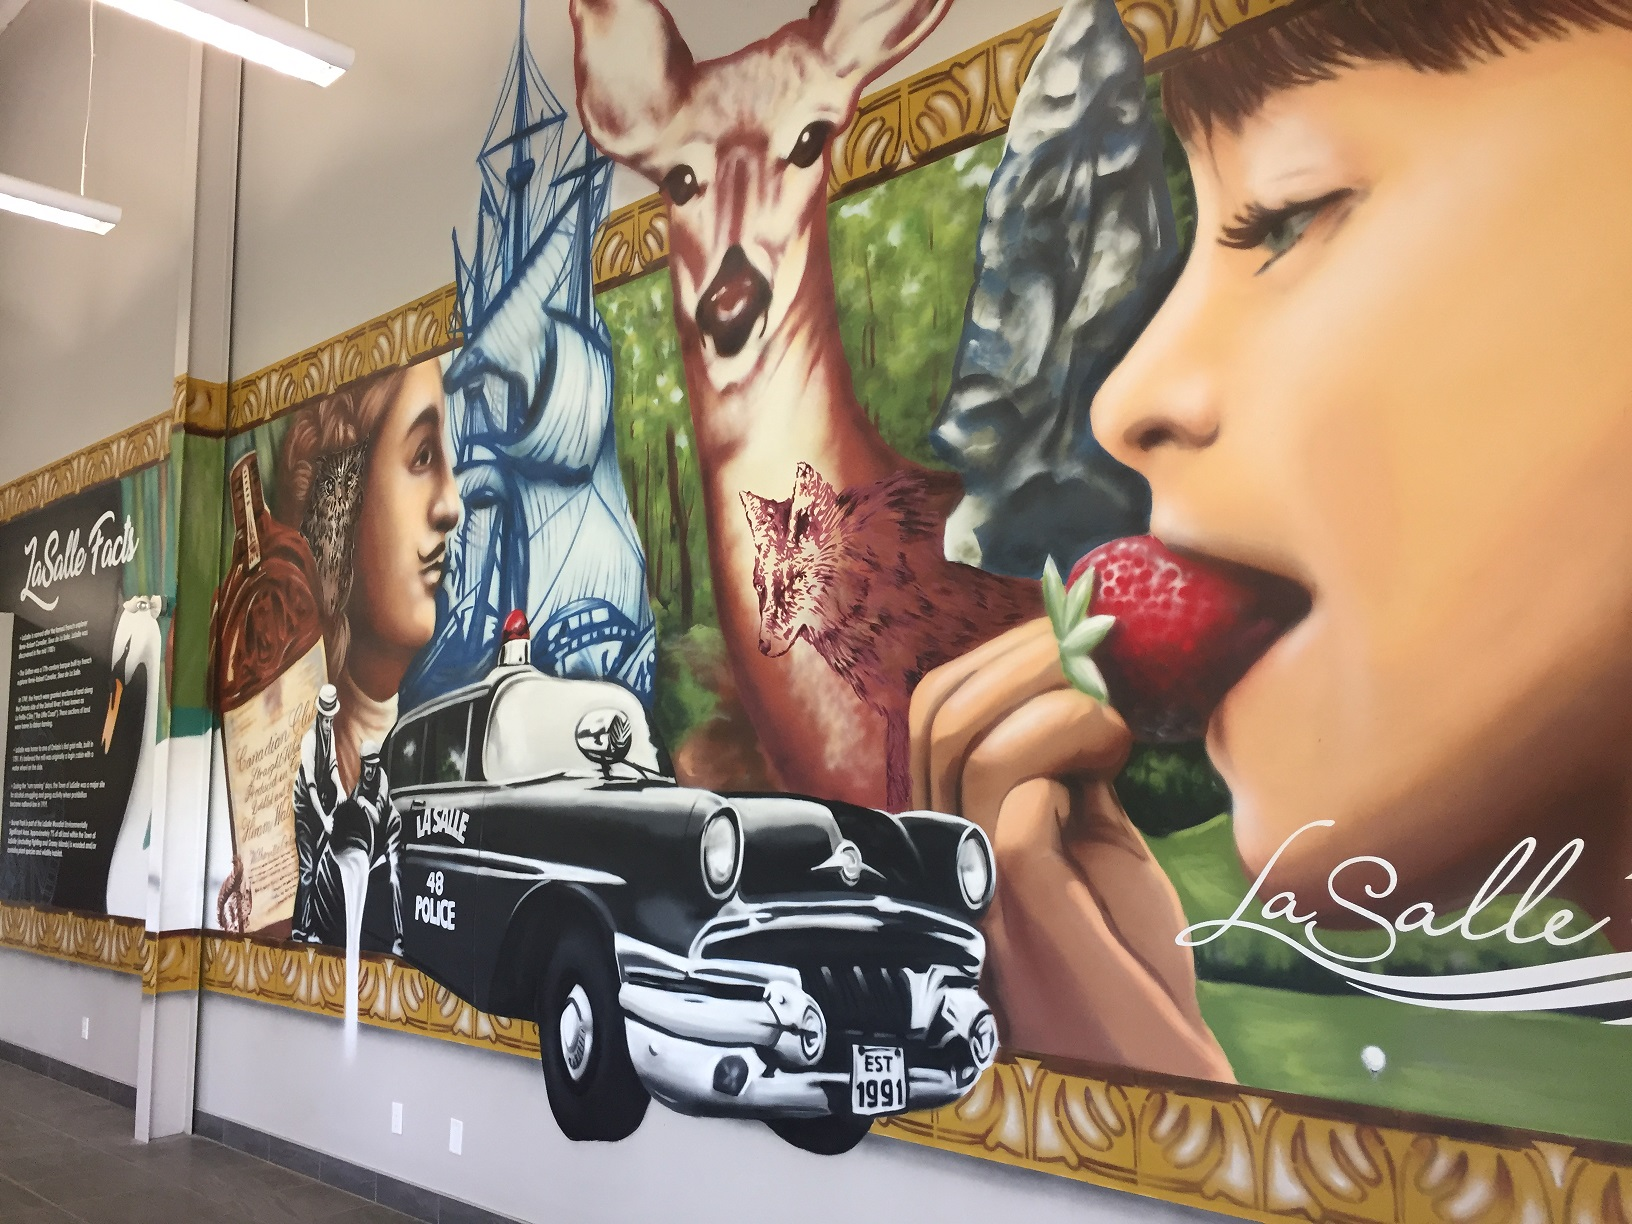 Riverdance Mural: LaSalle, Then til Now